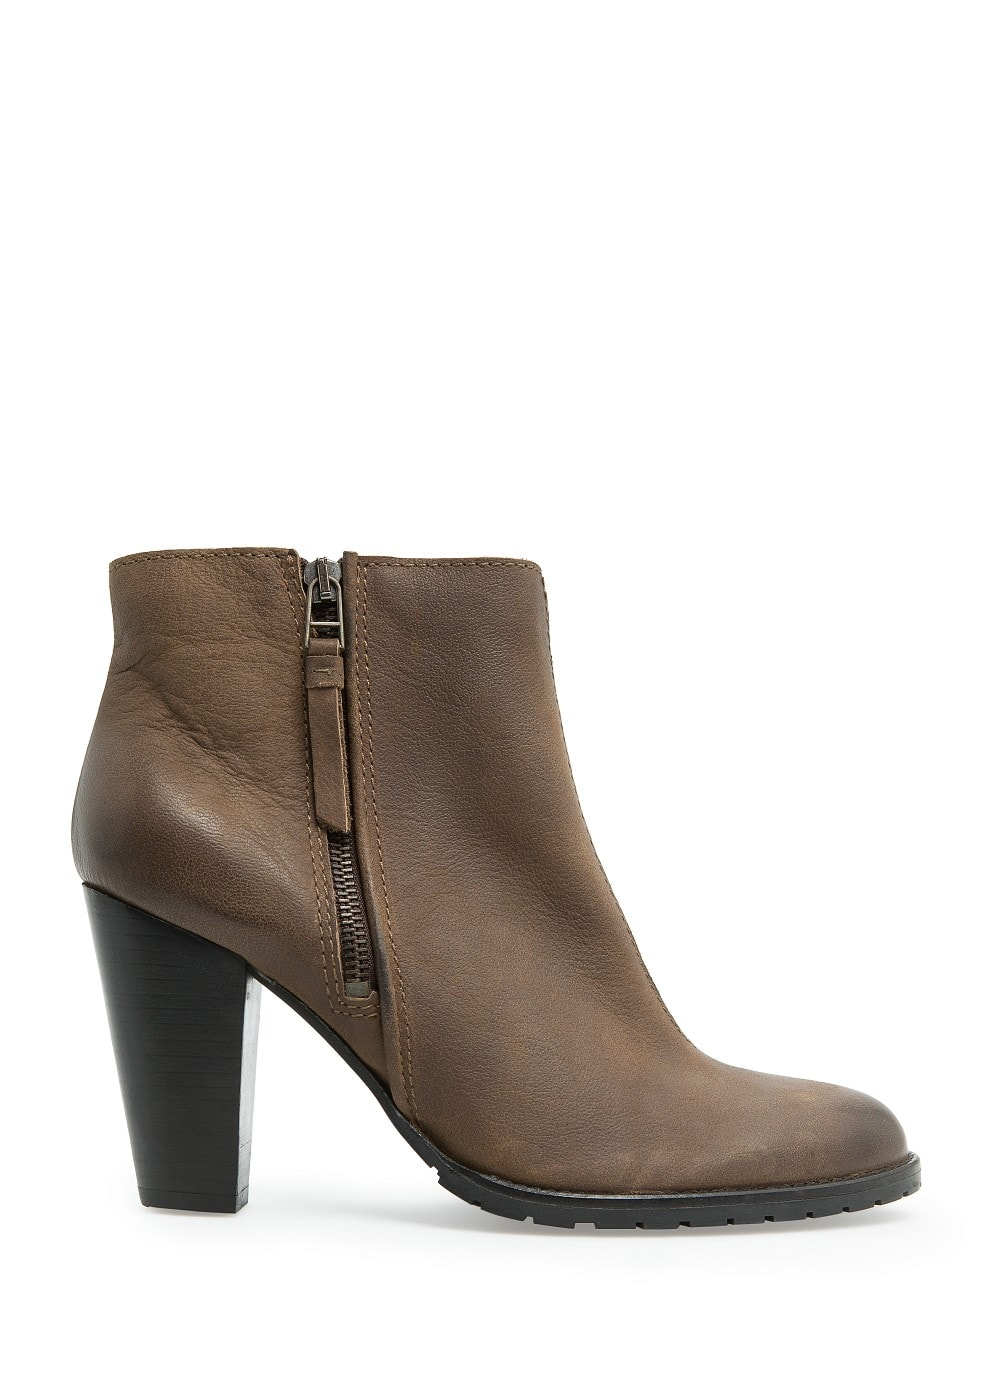 Wooden heel leather ankle boots | MANGO MAN